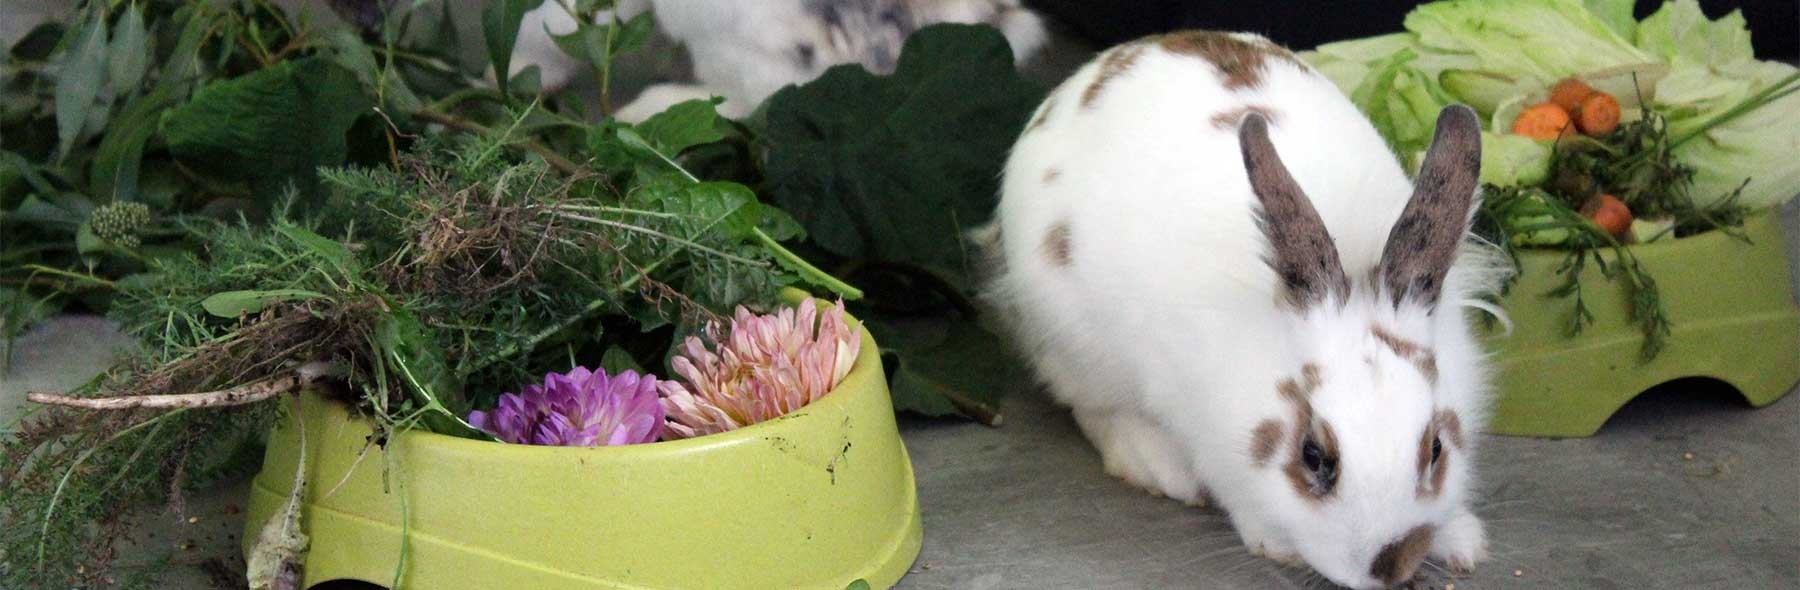 Poisonous Plants – Rabbit Welfare Association & Fund (Rwaf) pertaining to Garden Flower Dangerous To Rabbits